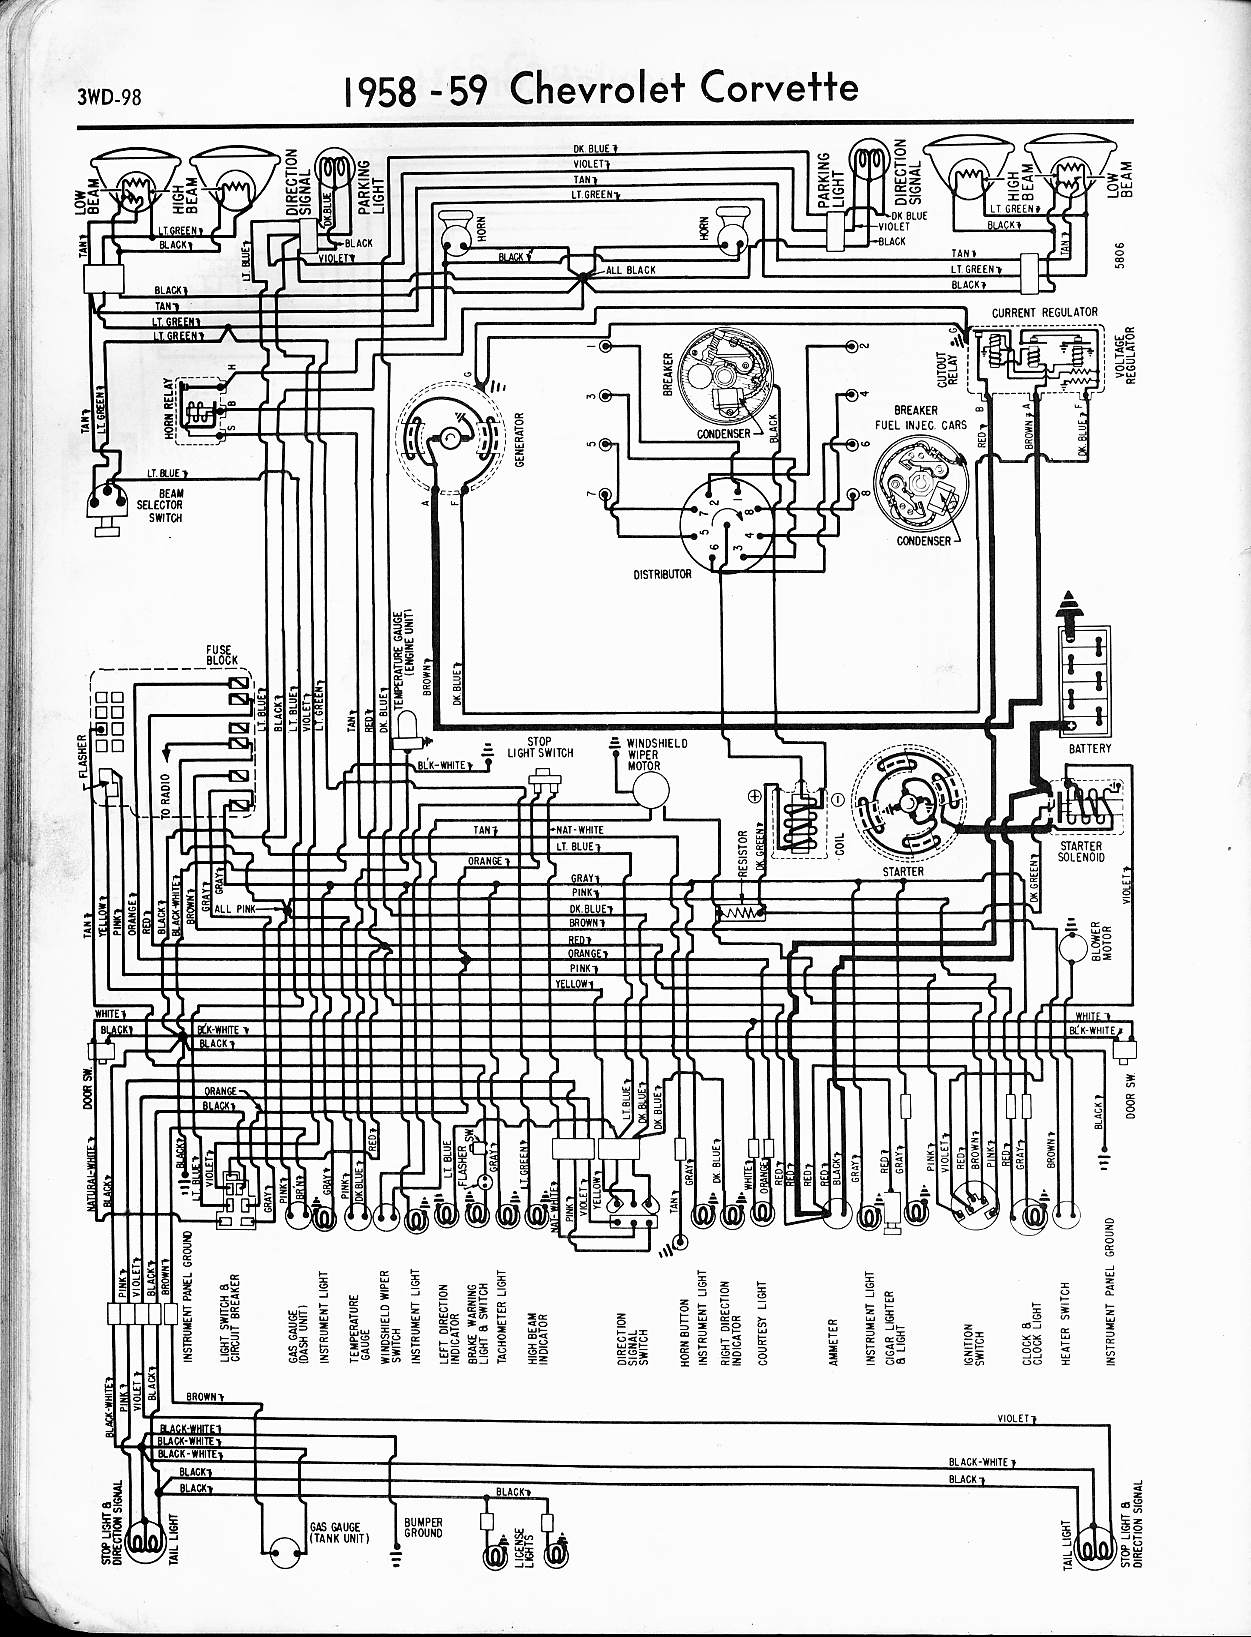 hight resolution of 1958 apache wiring diagram wiring diagrams farmall wiring diagram 1958 apache wiring diagram